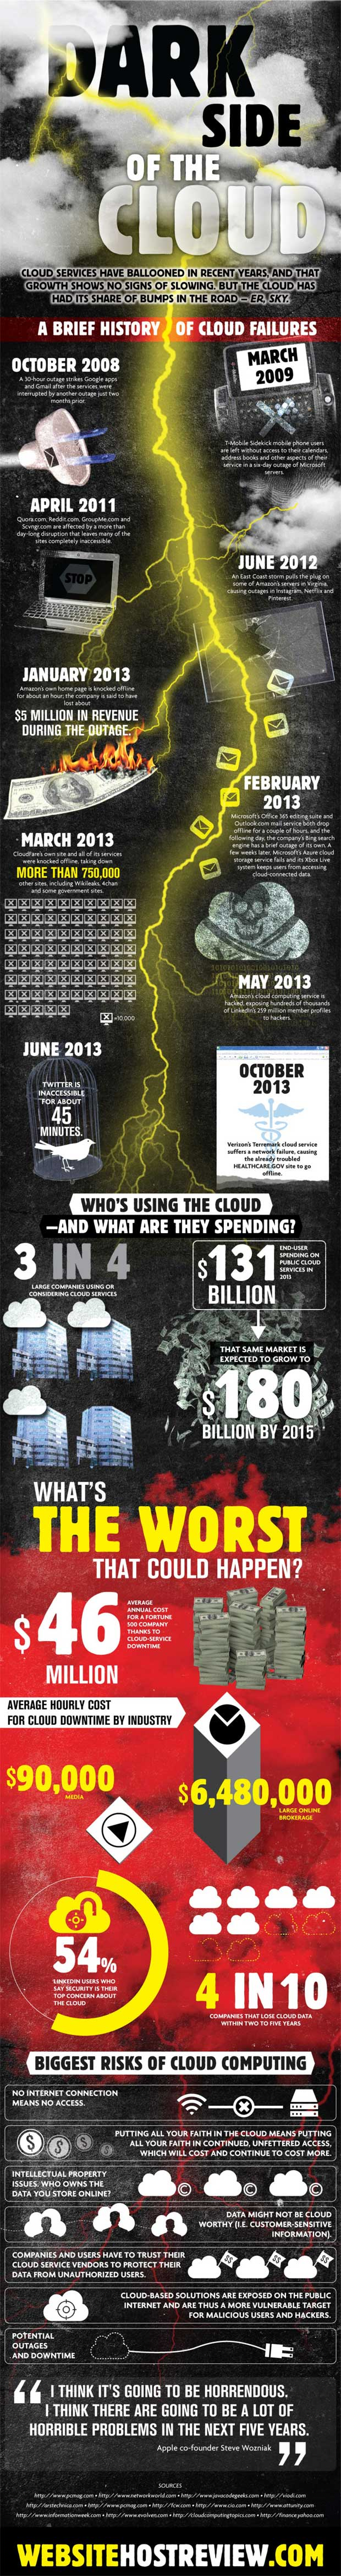 dark-side-of-the-cloud-infographic